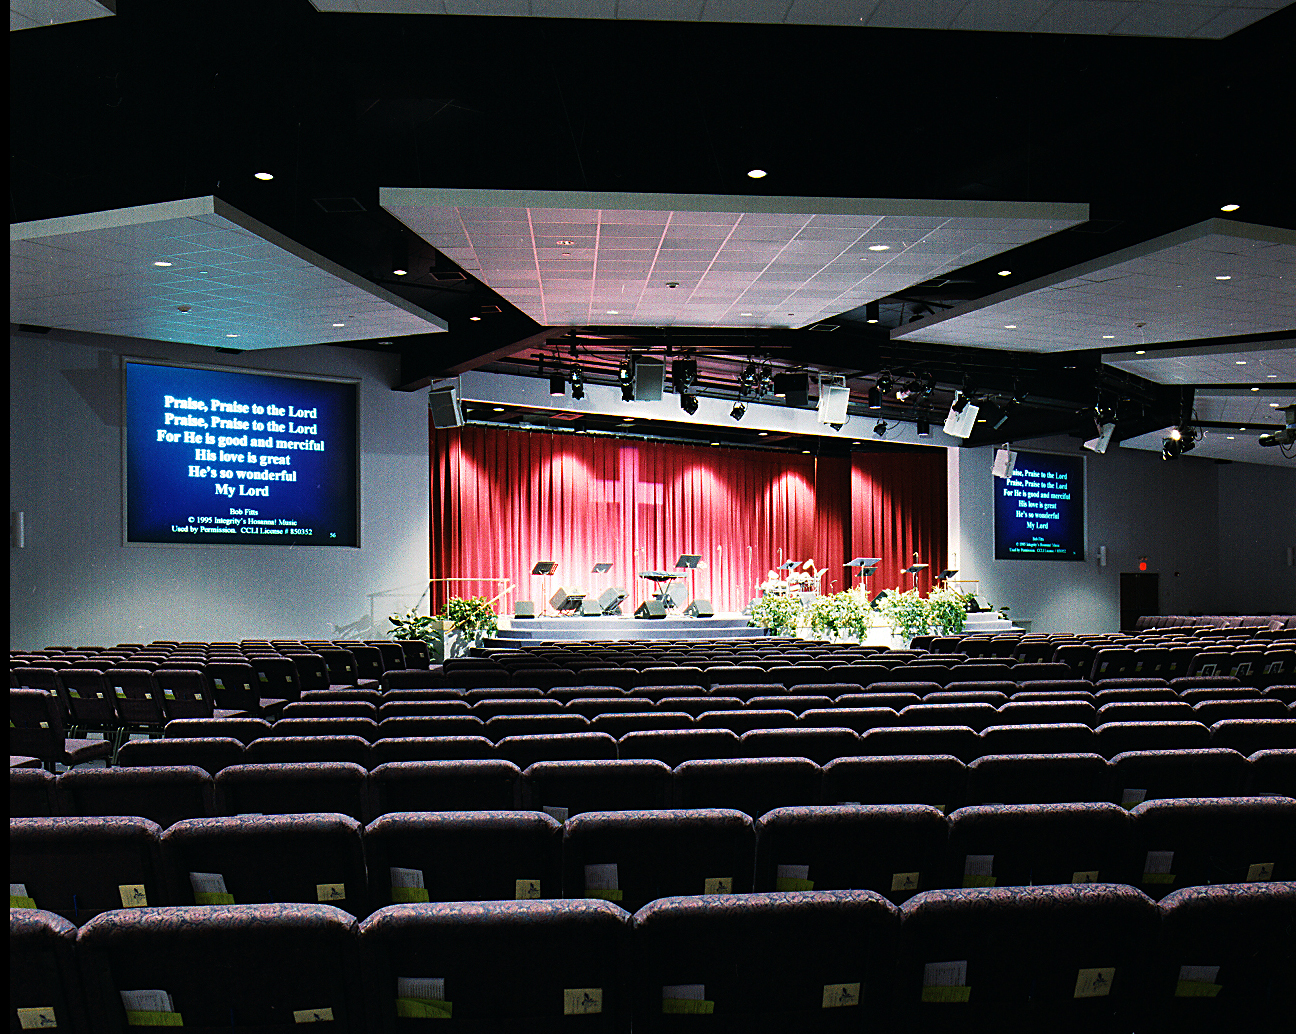 Transforming a grocery store into a 1,000 seat auditorium forgrace fellowship was accomplished in 6 months, including the removal of several columns that obstructed sight lines. a higher stage was utilized to compensate for the flat floor.